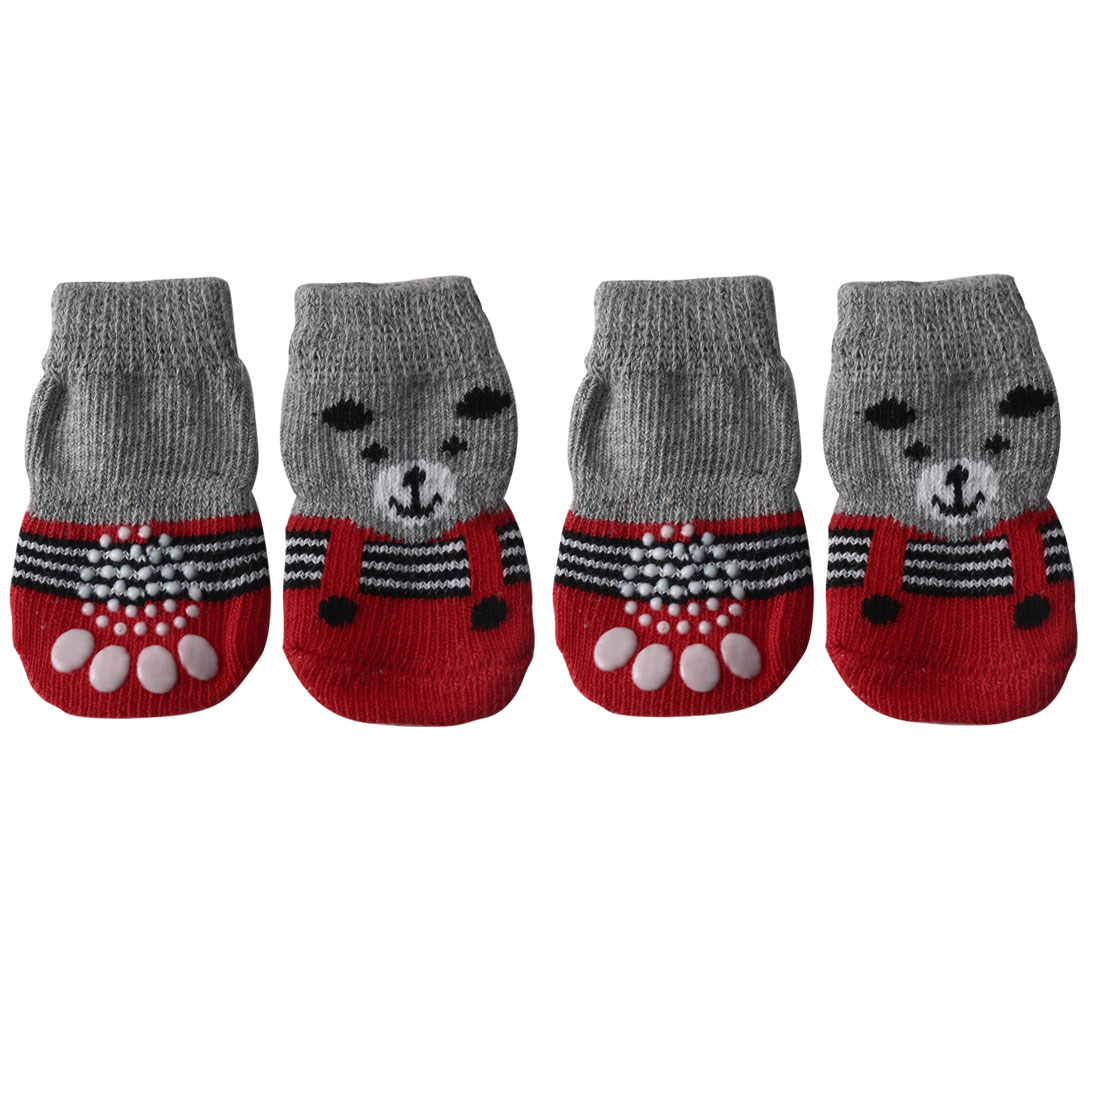 4 PCS Puppy Dog Cat Socks Warm Soft Anti-Slip Knit Paw Protector Grey + Red, S